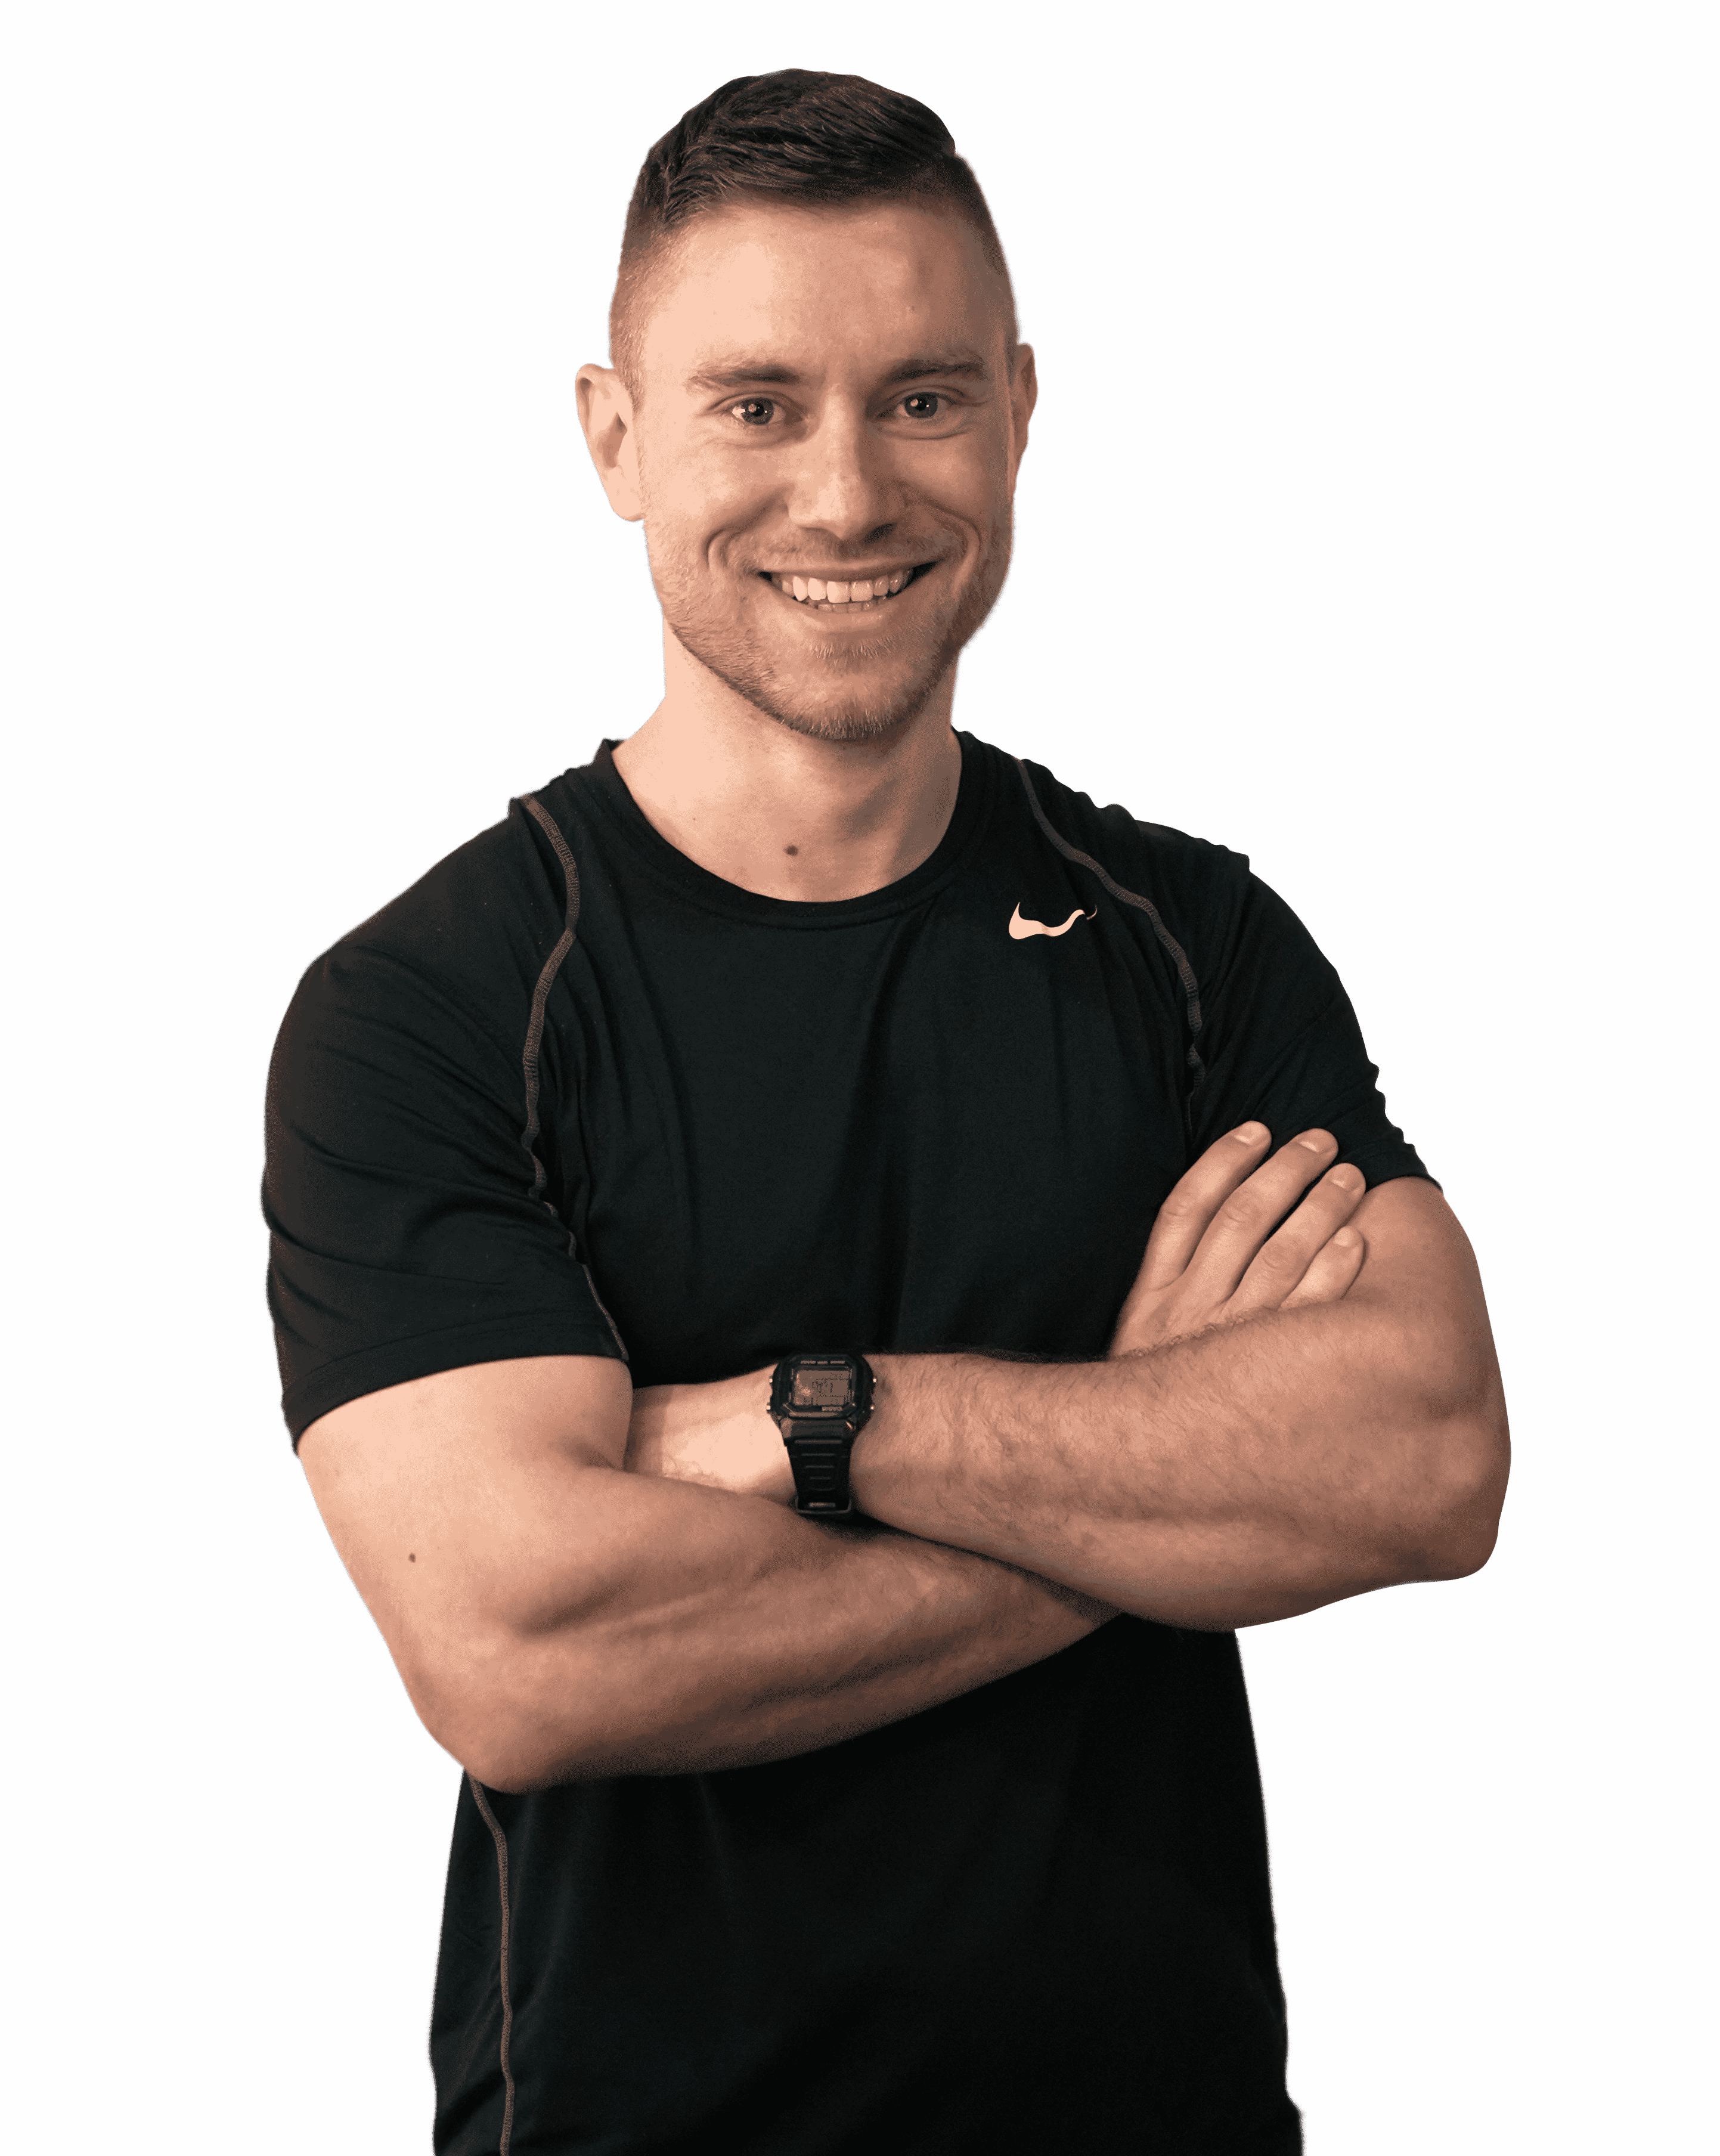 laurence_fitness_coach